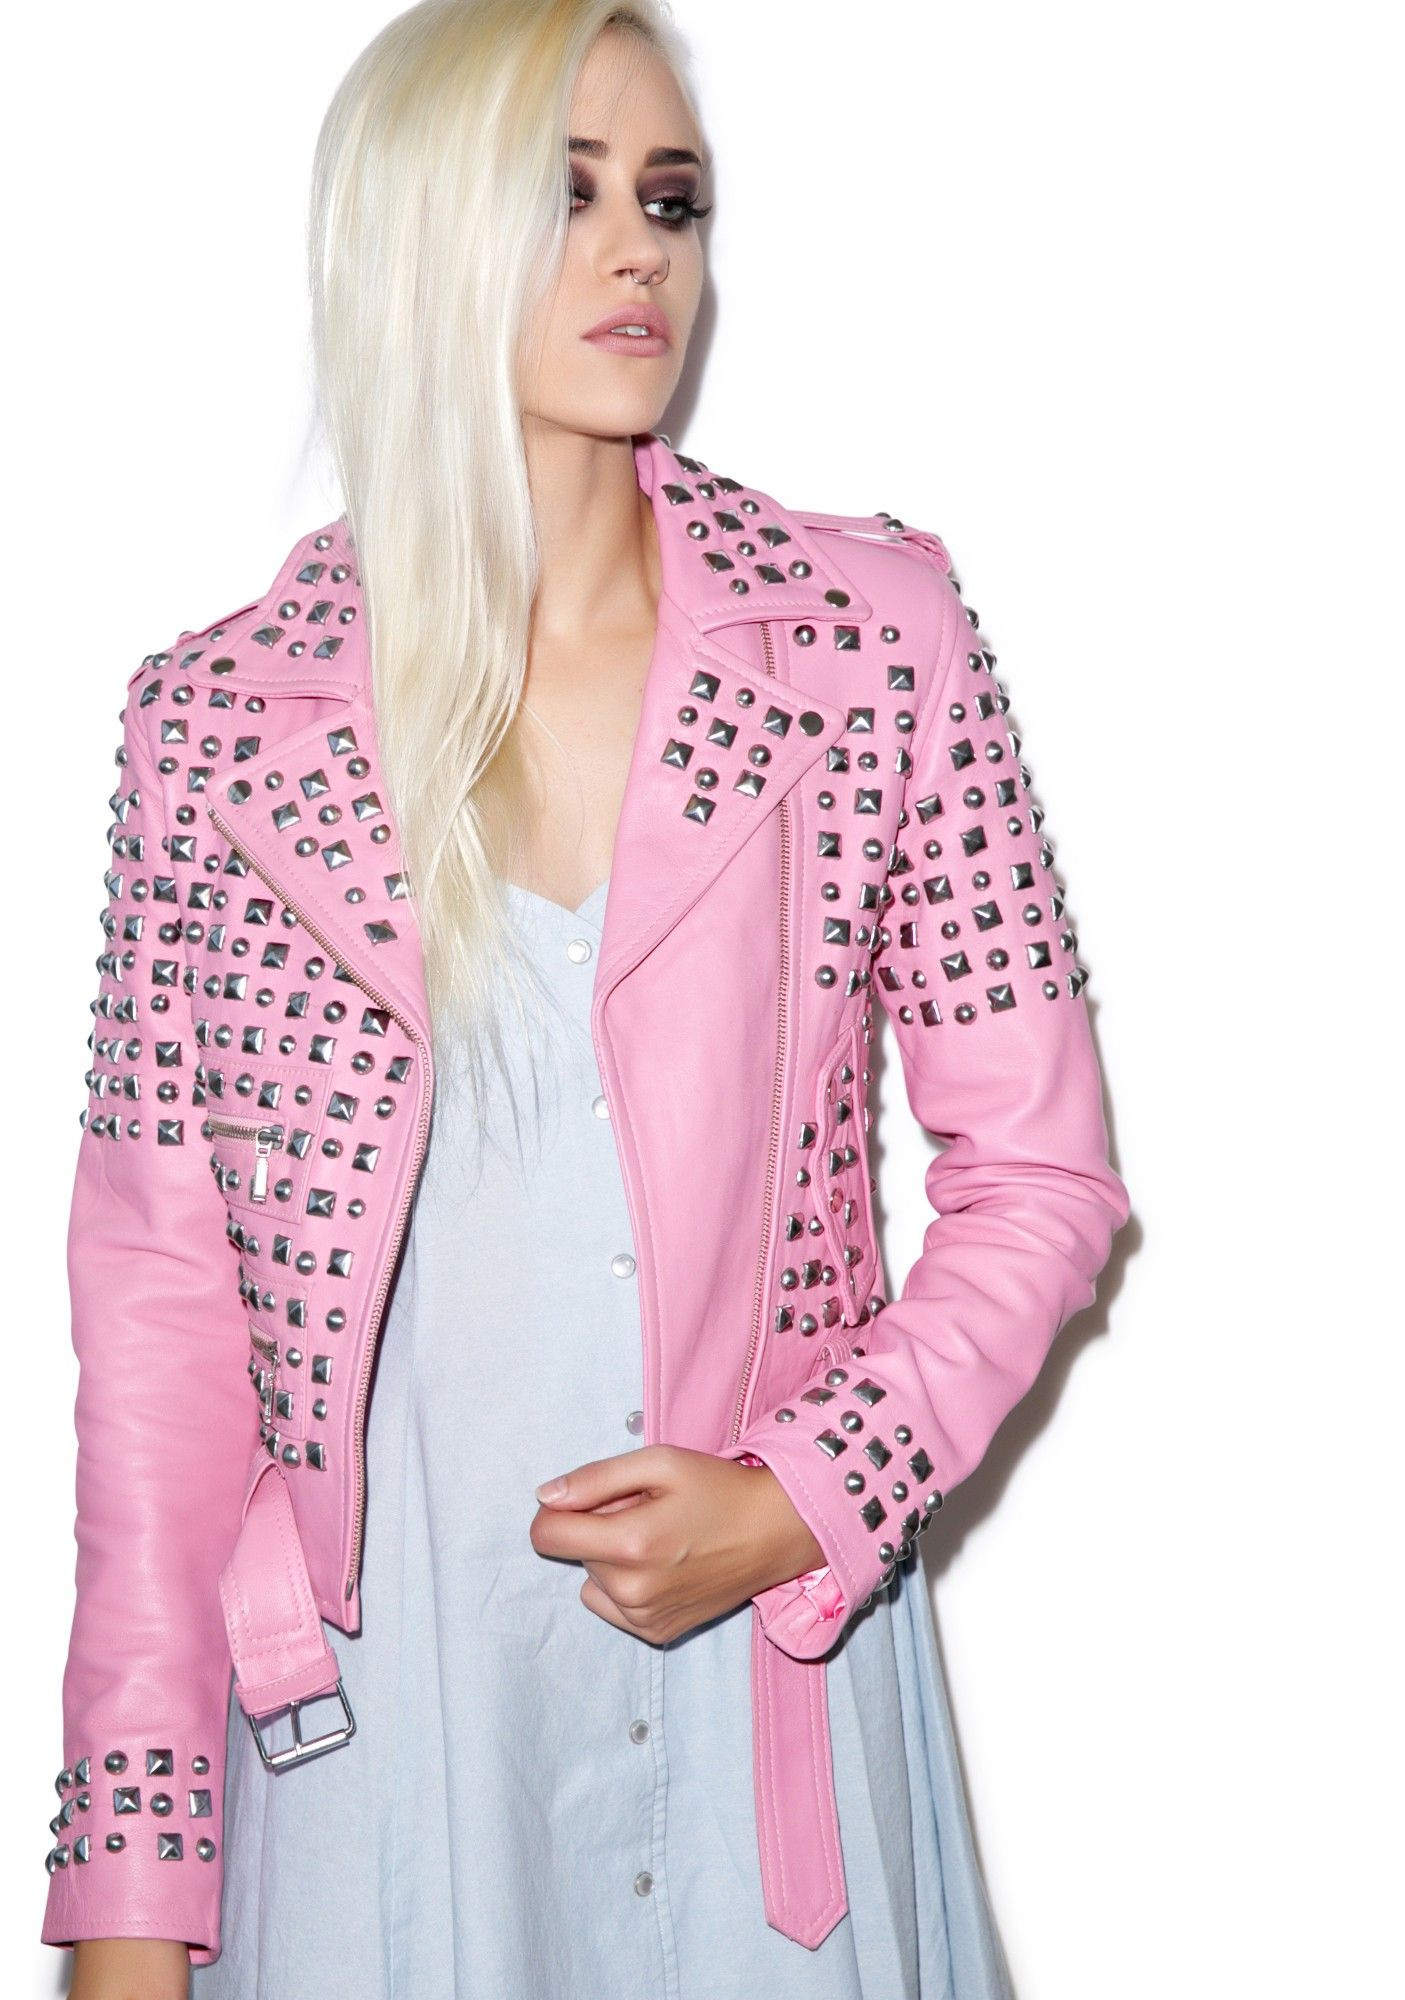 Studded Leather Jacket | Studded leather, Studded jacket and ...